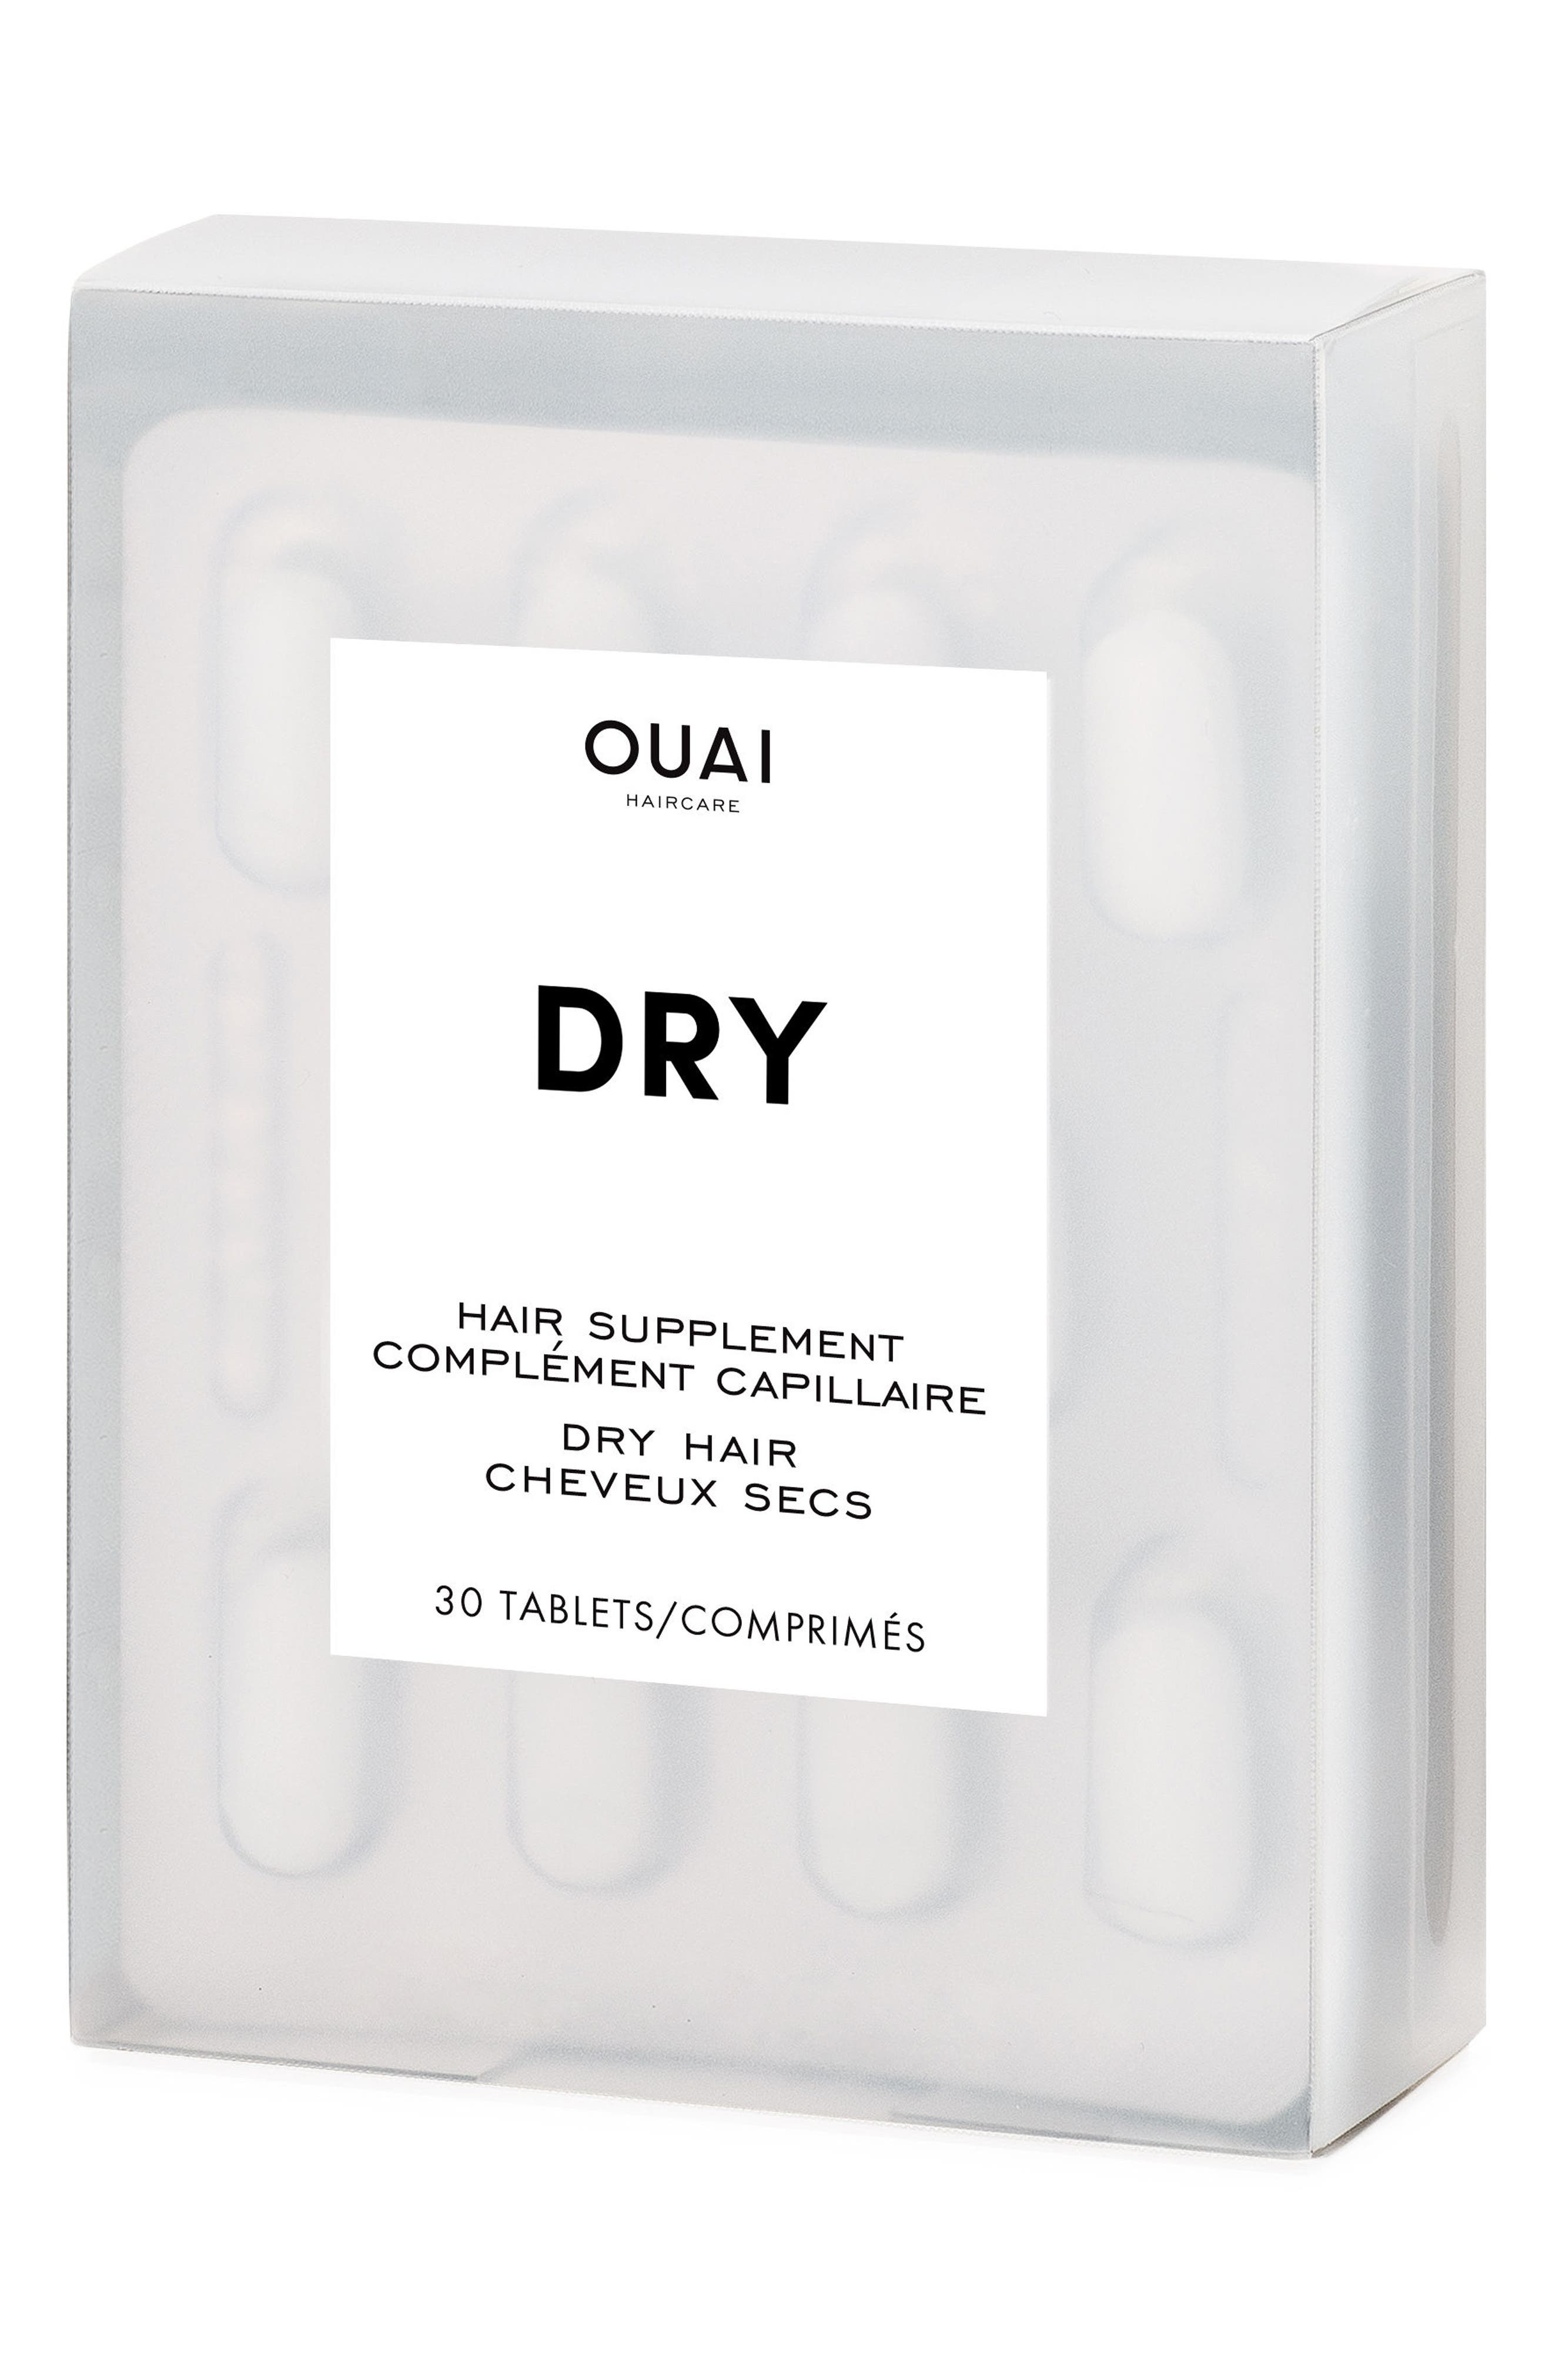 Alternate Image 1 Selected - OUAI Dry Hair Supplements